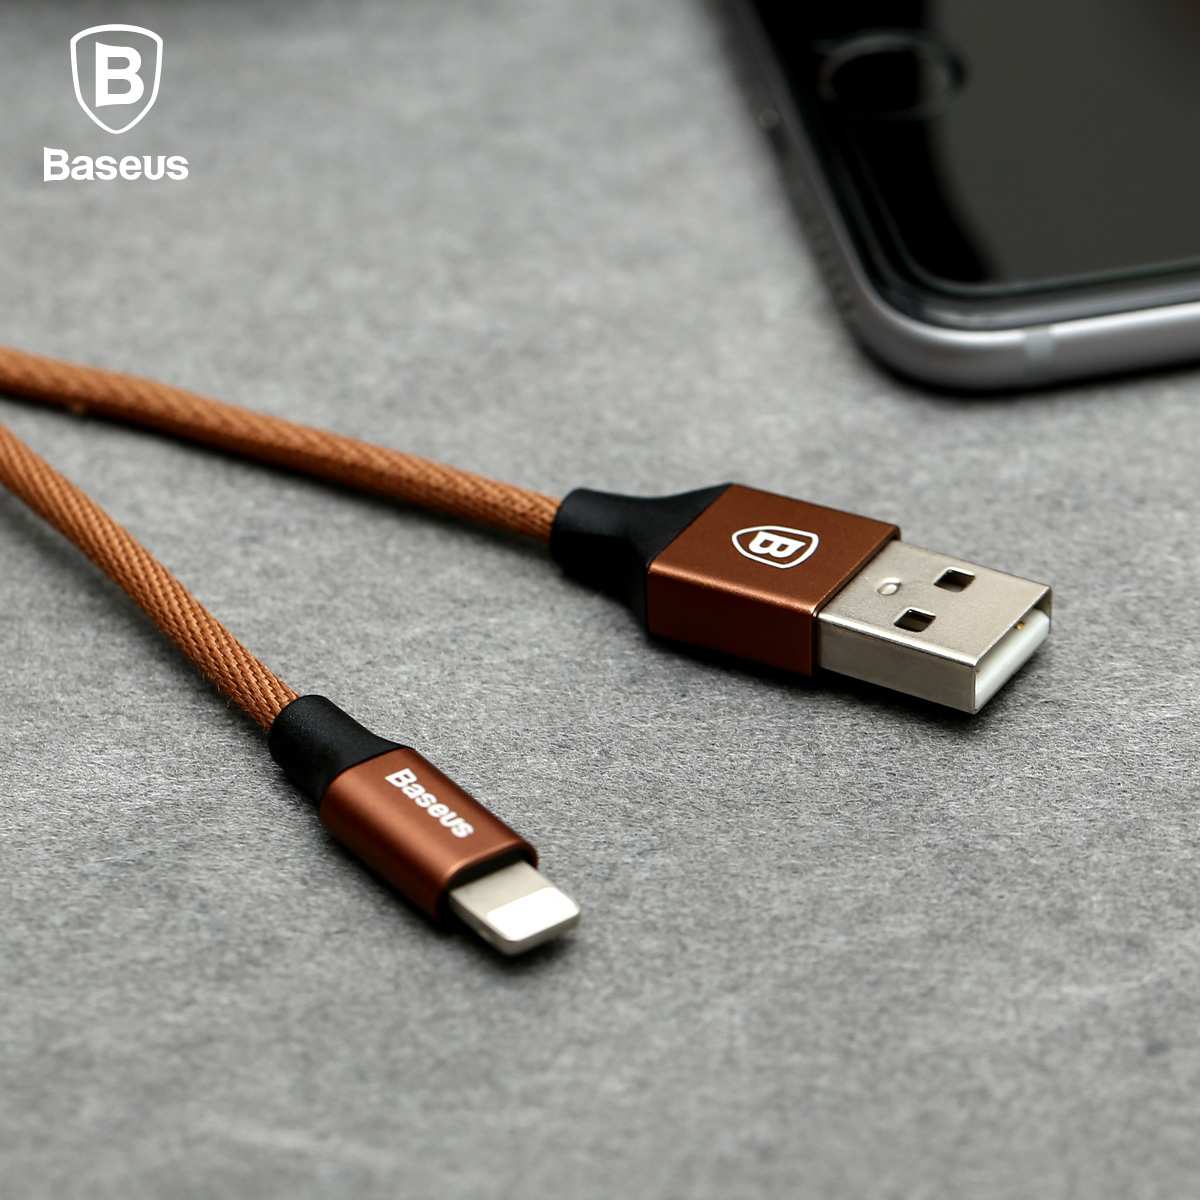 Baseus Yiven Cable 8 Pin USB Data Charging Braided Wire 1.8M